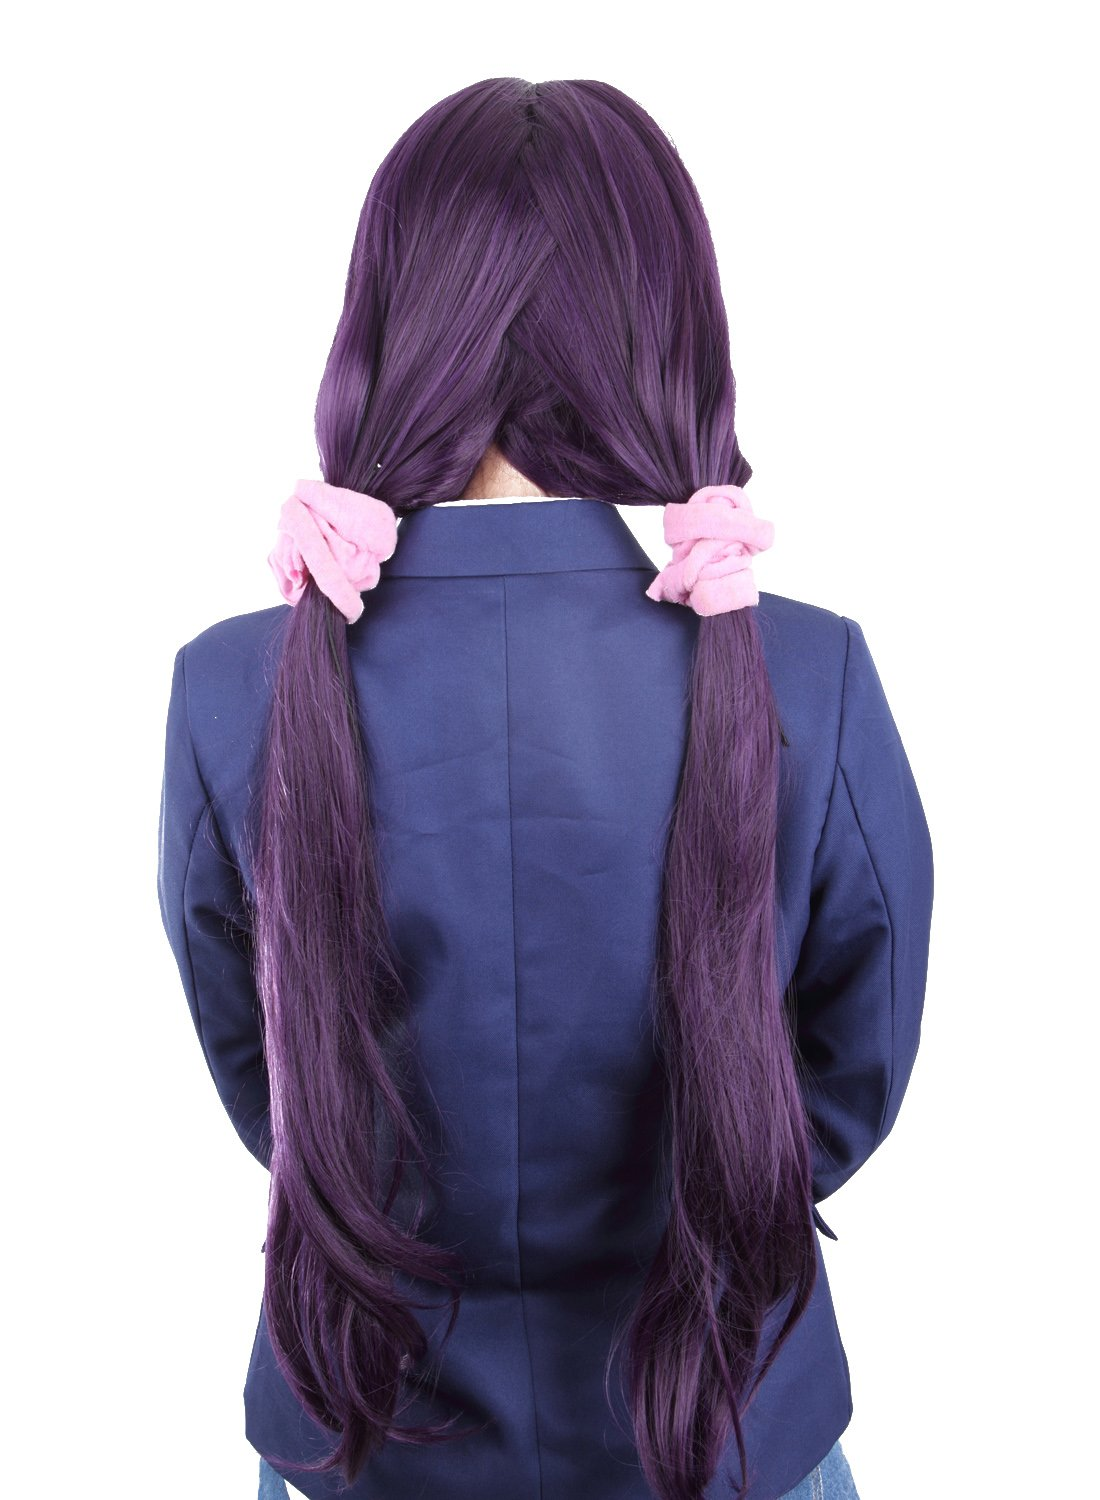 Probeauty Nozomi Tojo Cosplay Wigs Purple Straight Costume Hair Wig for Love Live by Probeauty (Image #3)